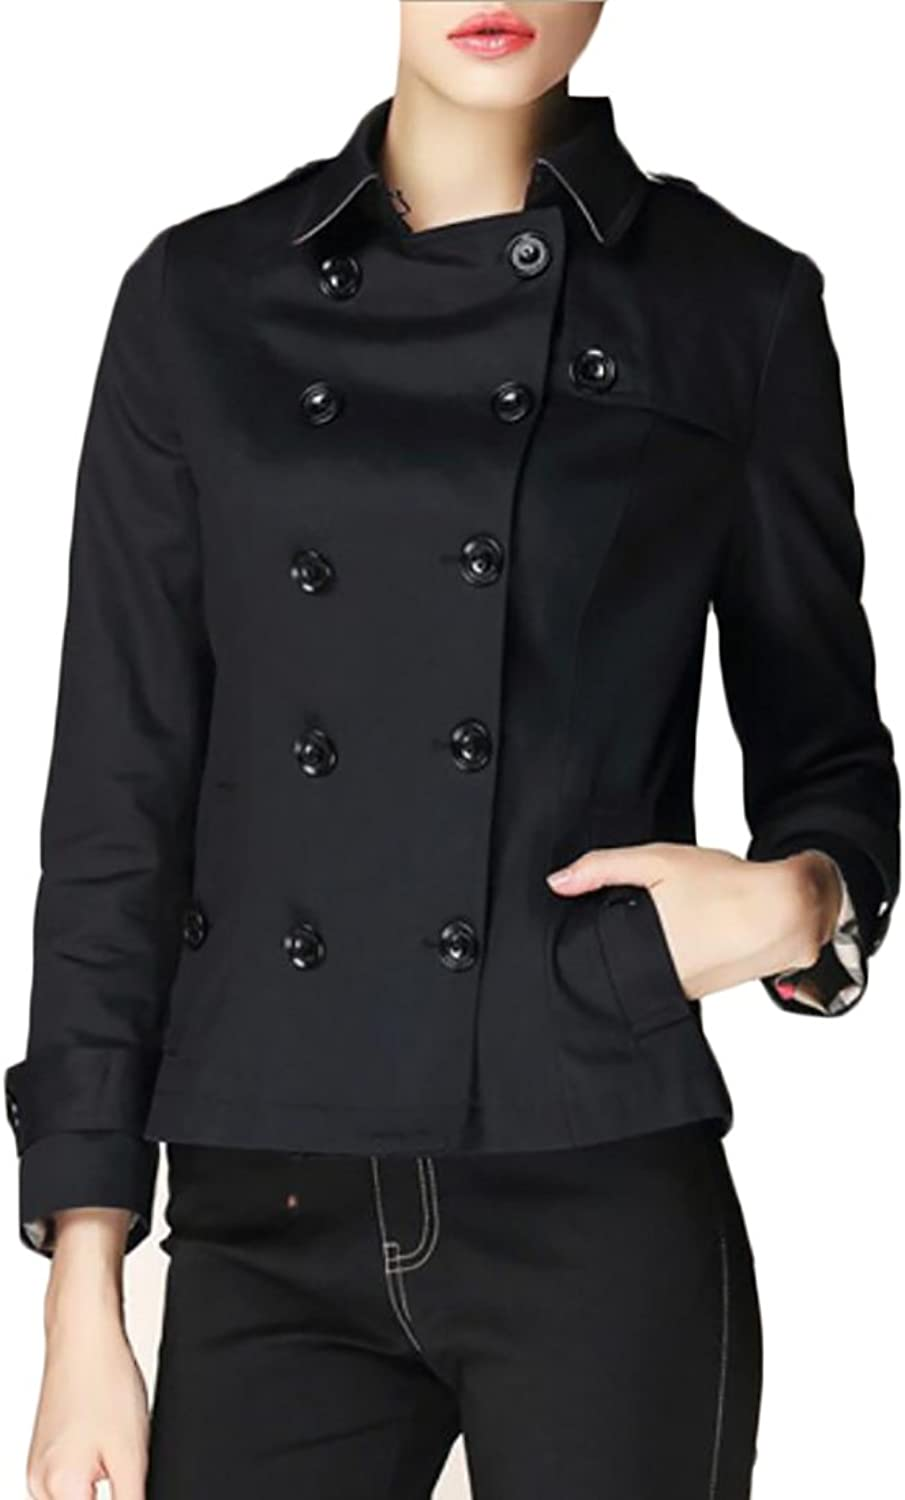 Esast Women Peacoat Double Breasted Overcoat Length Wool Blazer